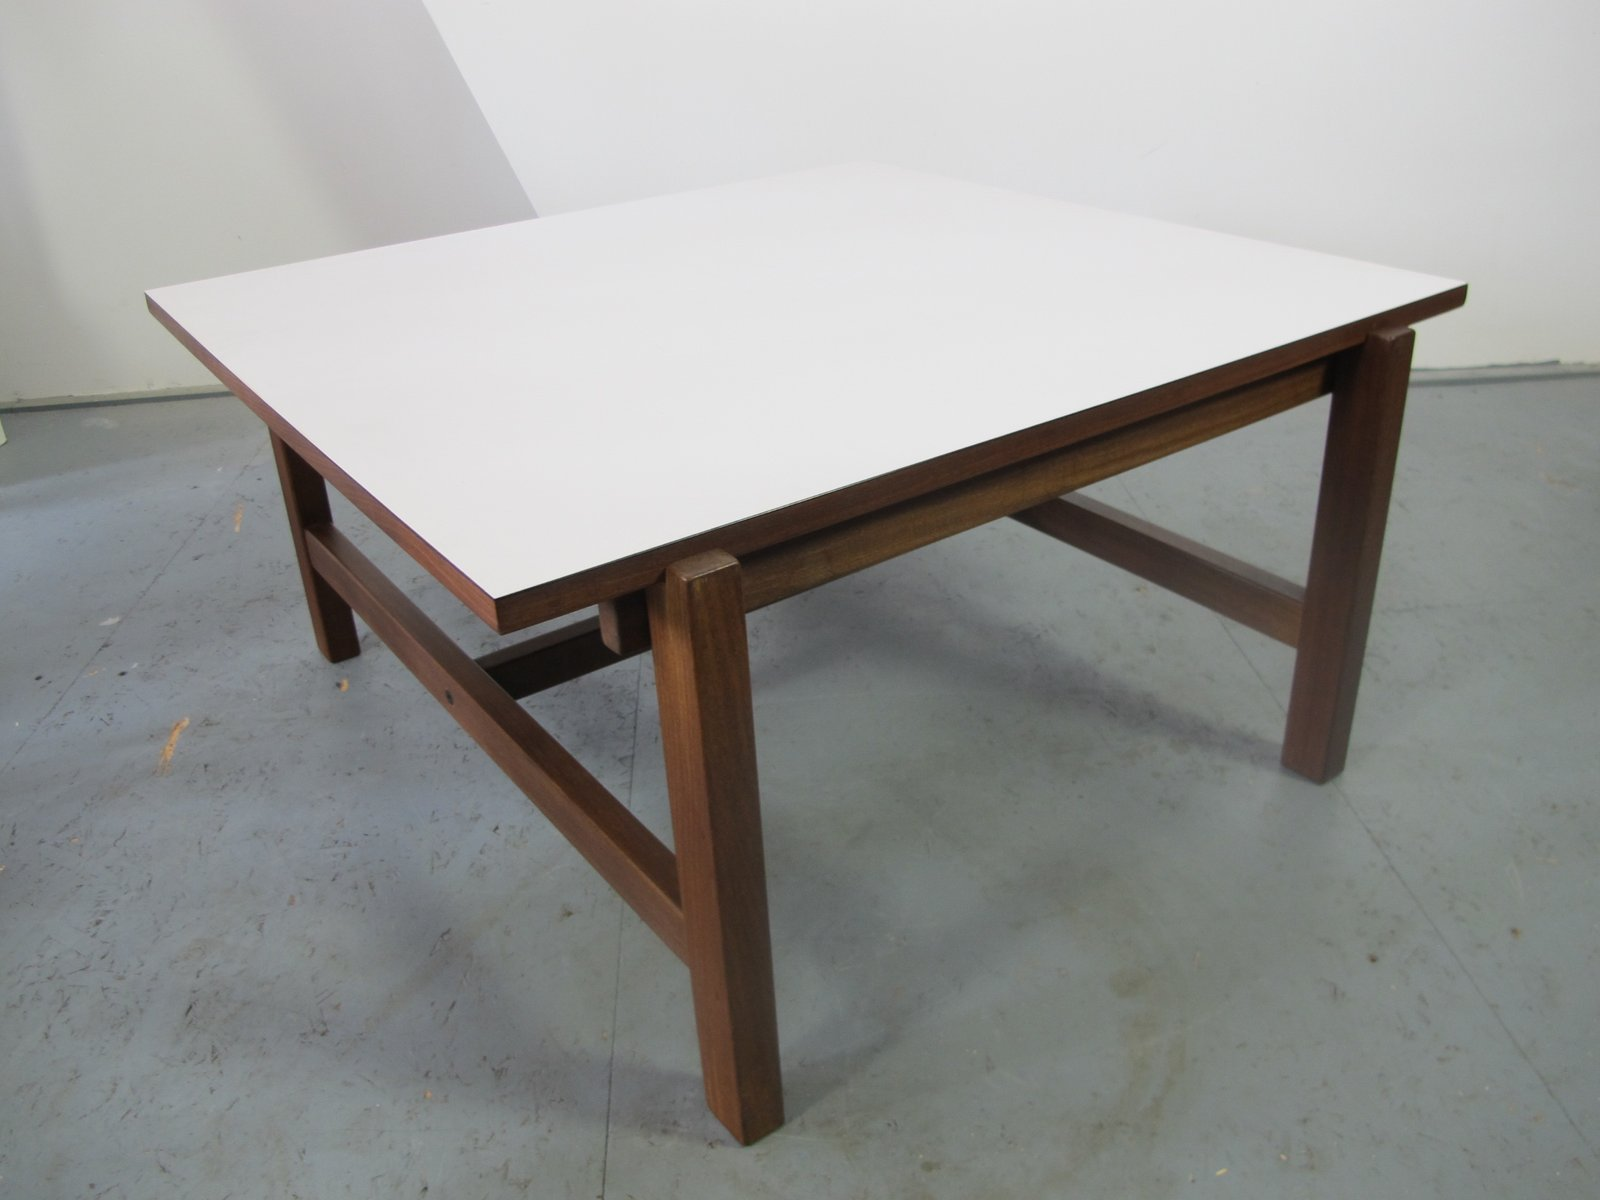 Vintage Teak and Formica Reversible Coffee Table from Pastoe for